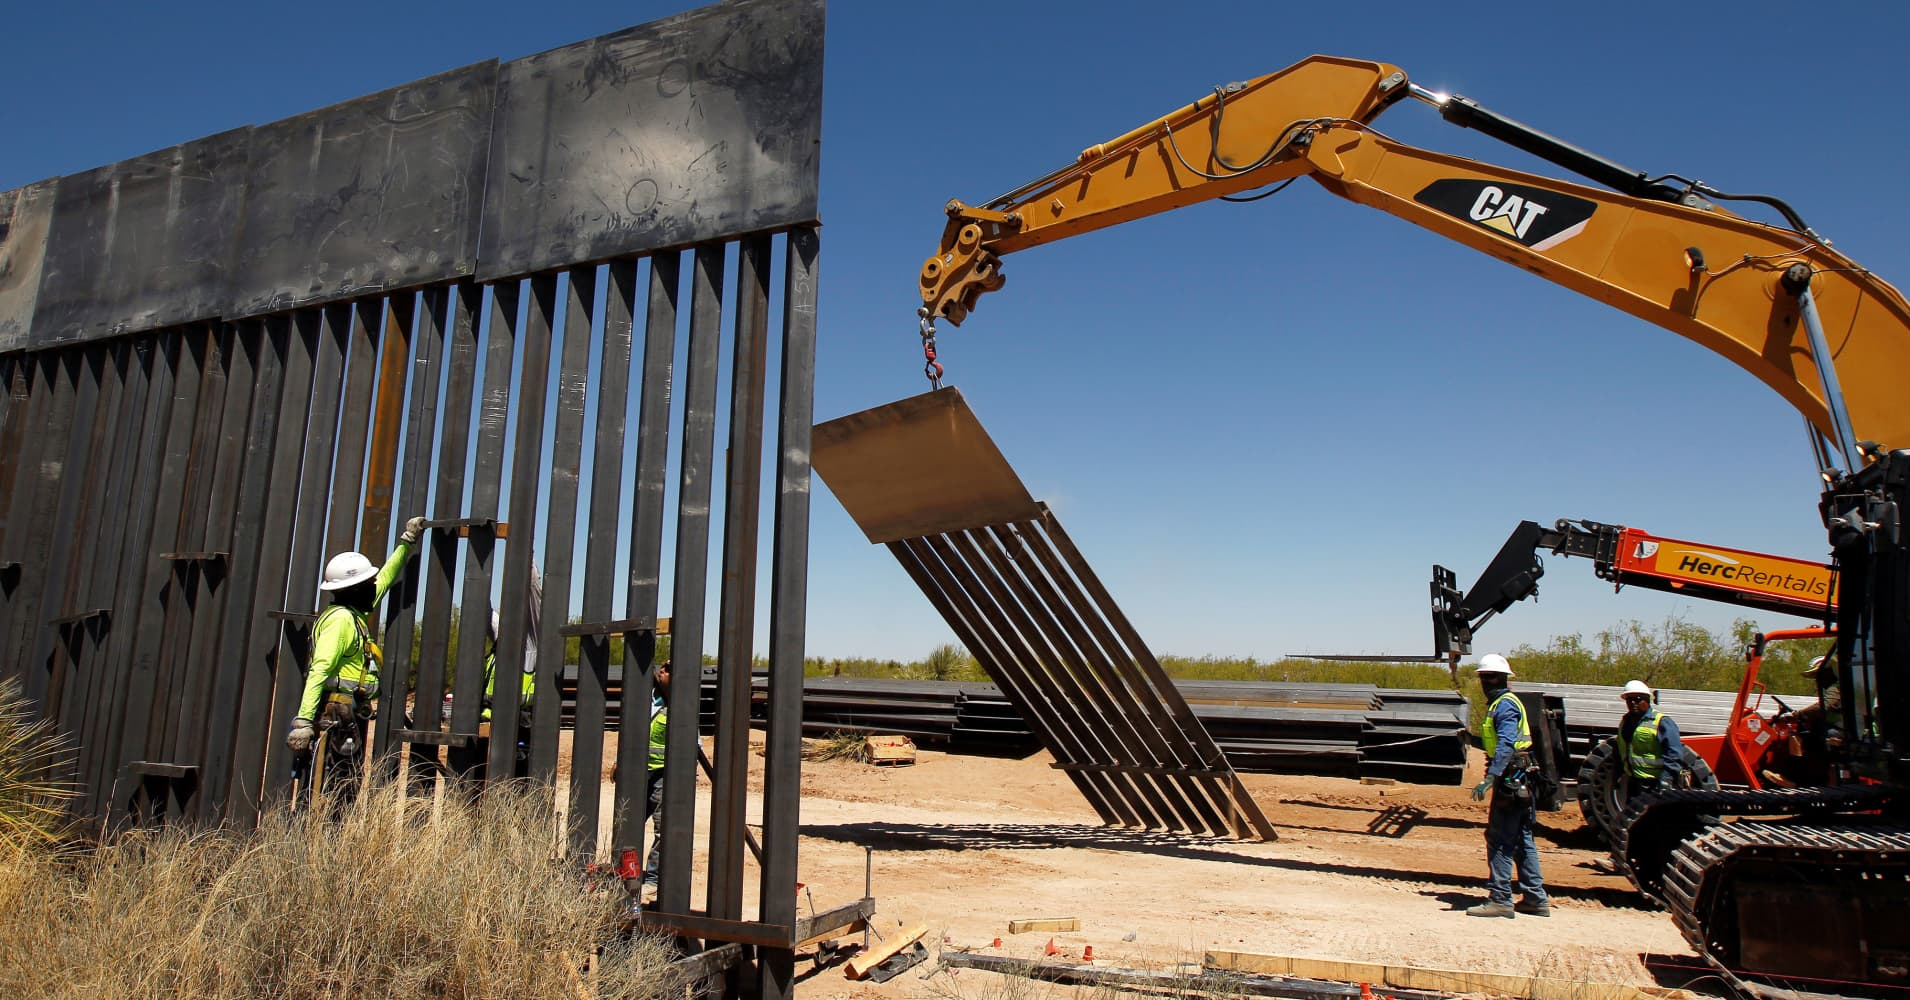 Trump tariffs would make a 'steel slat' border wall much more expensive for taxpayers